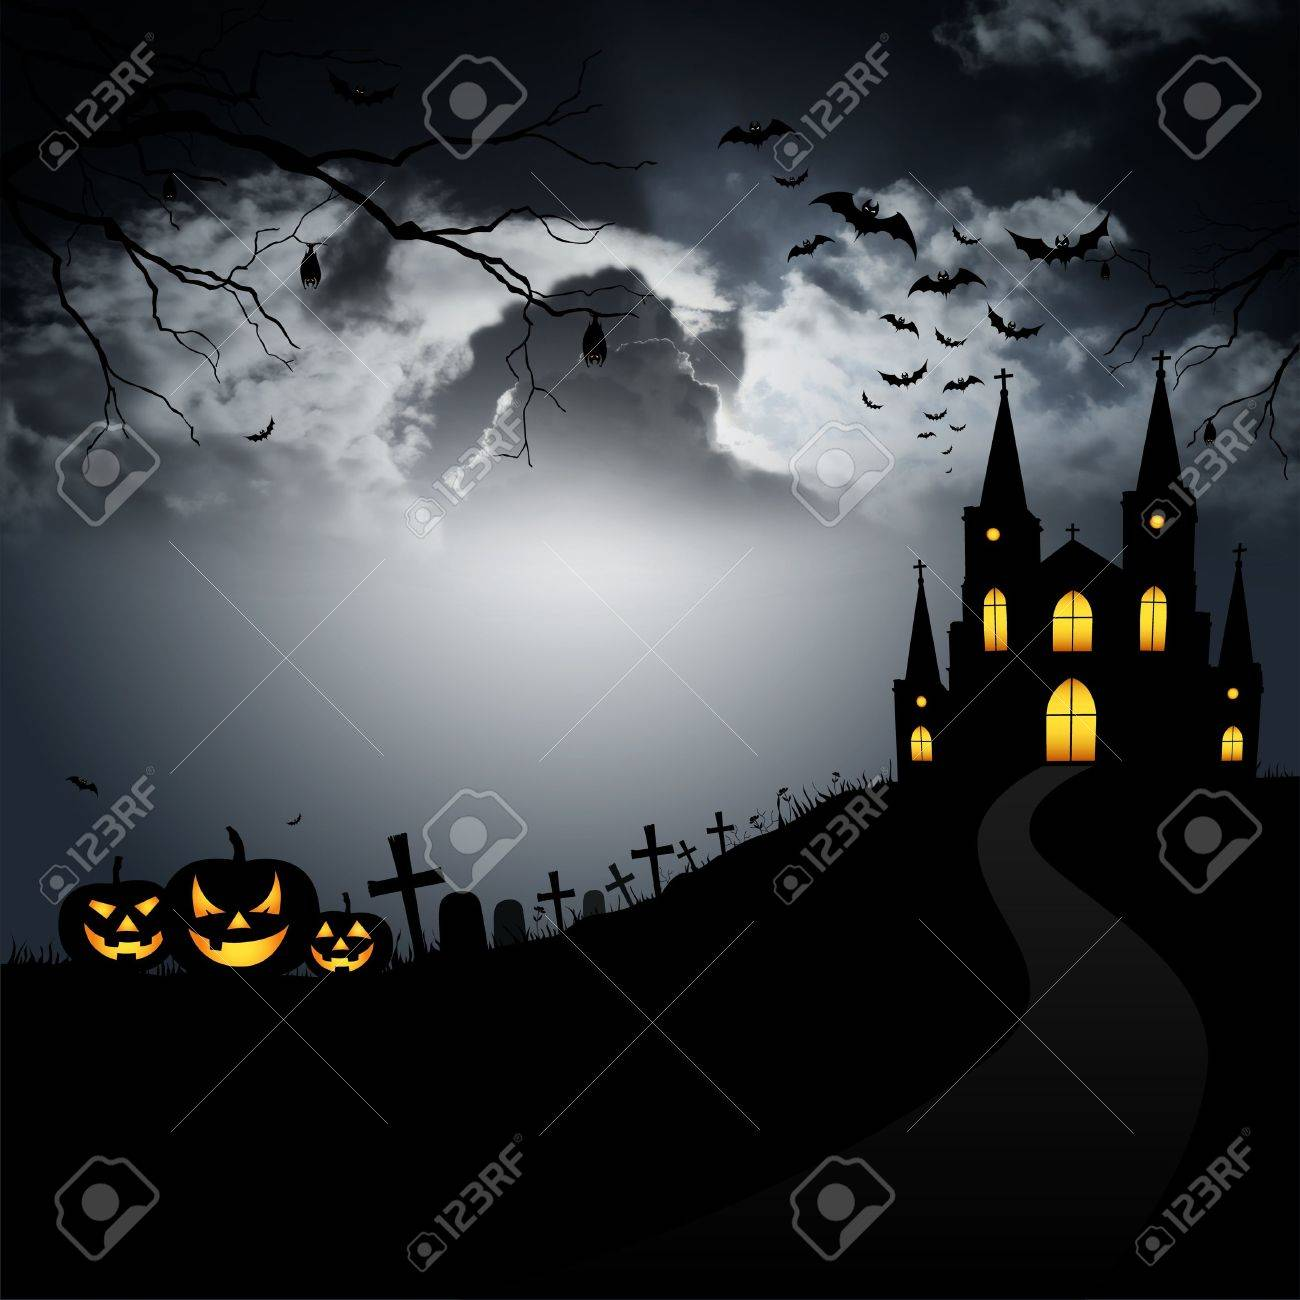 Pumpkin, scary monster in the cemetery on Halloween. Stock Photo - 10588861